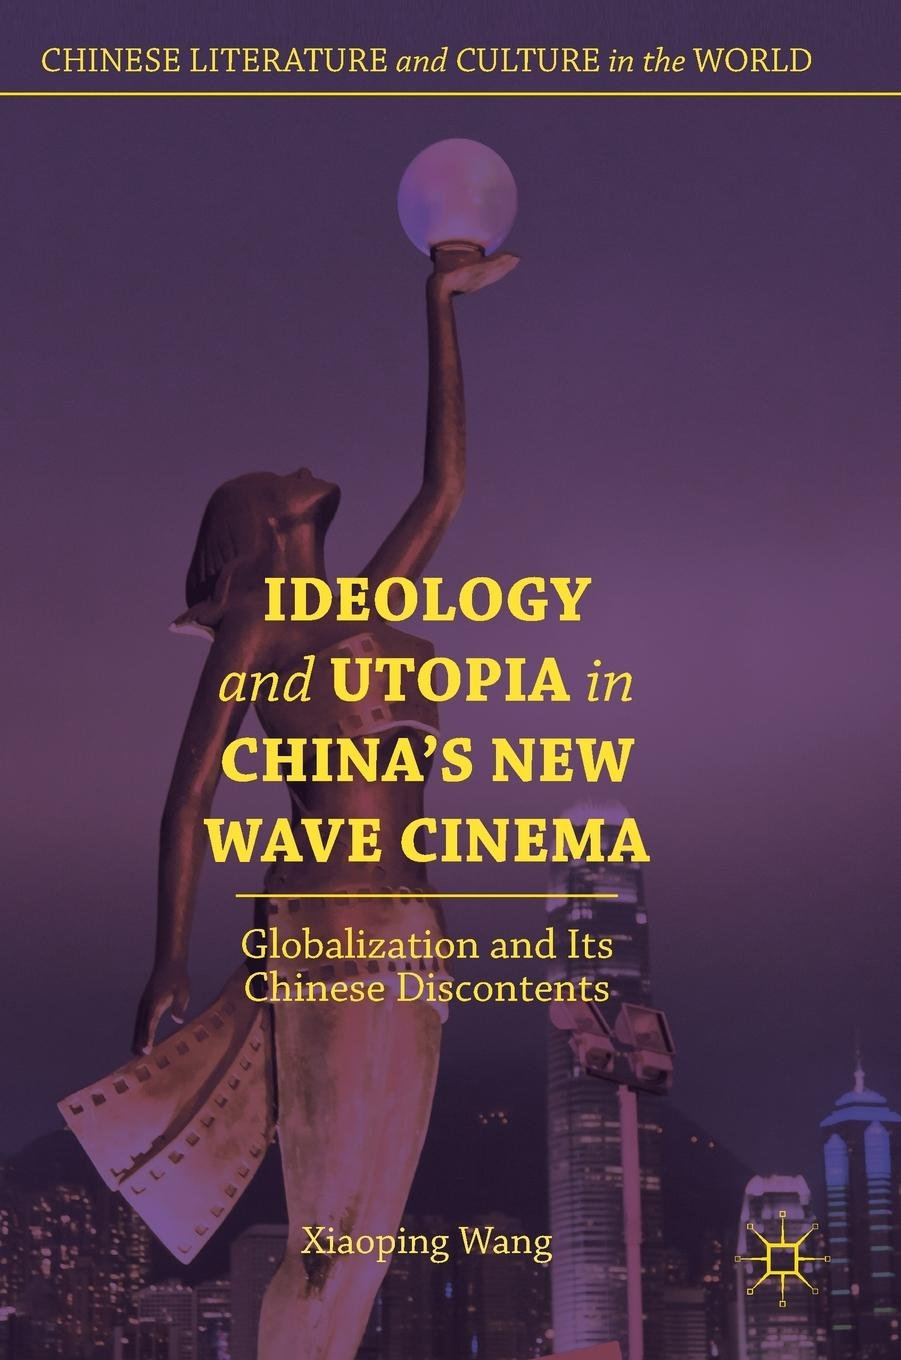 Ideology and Utopia in China's New Wave Cinema: Globalization and Its Chinese Discontents (Chinese Literature and Culture in the World) pdf epub